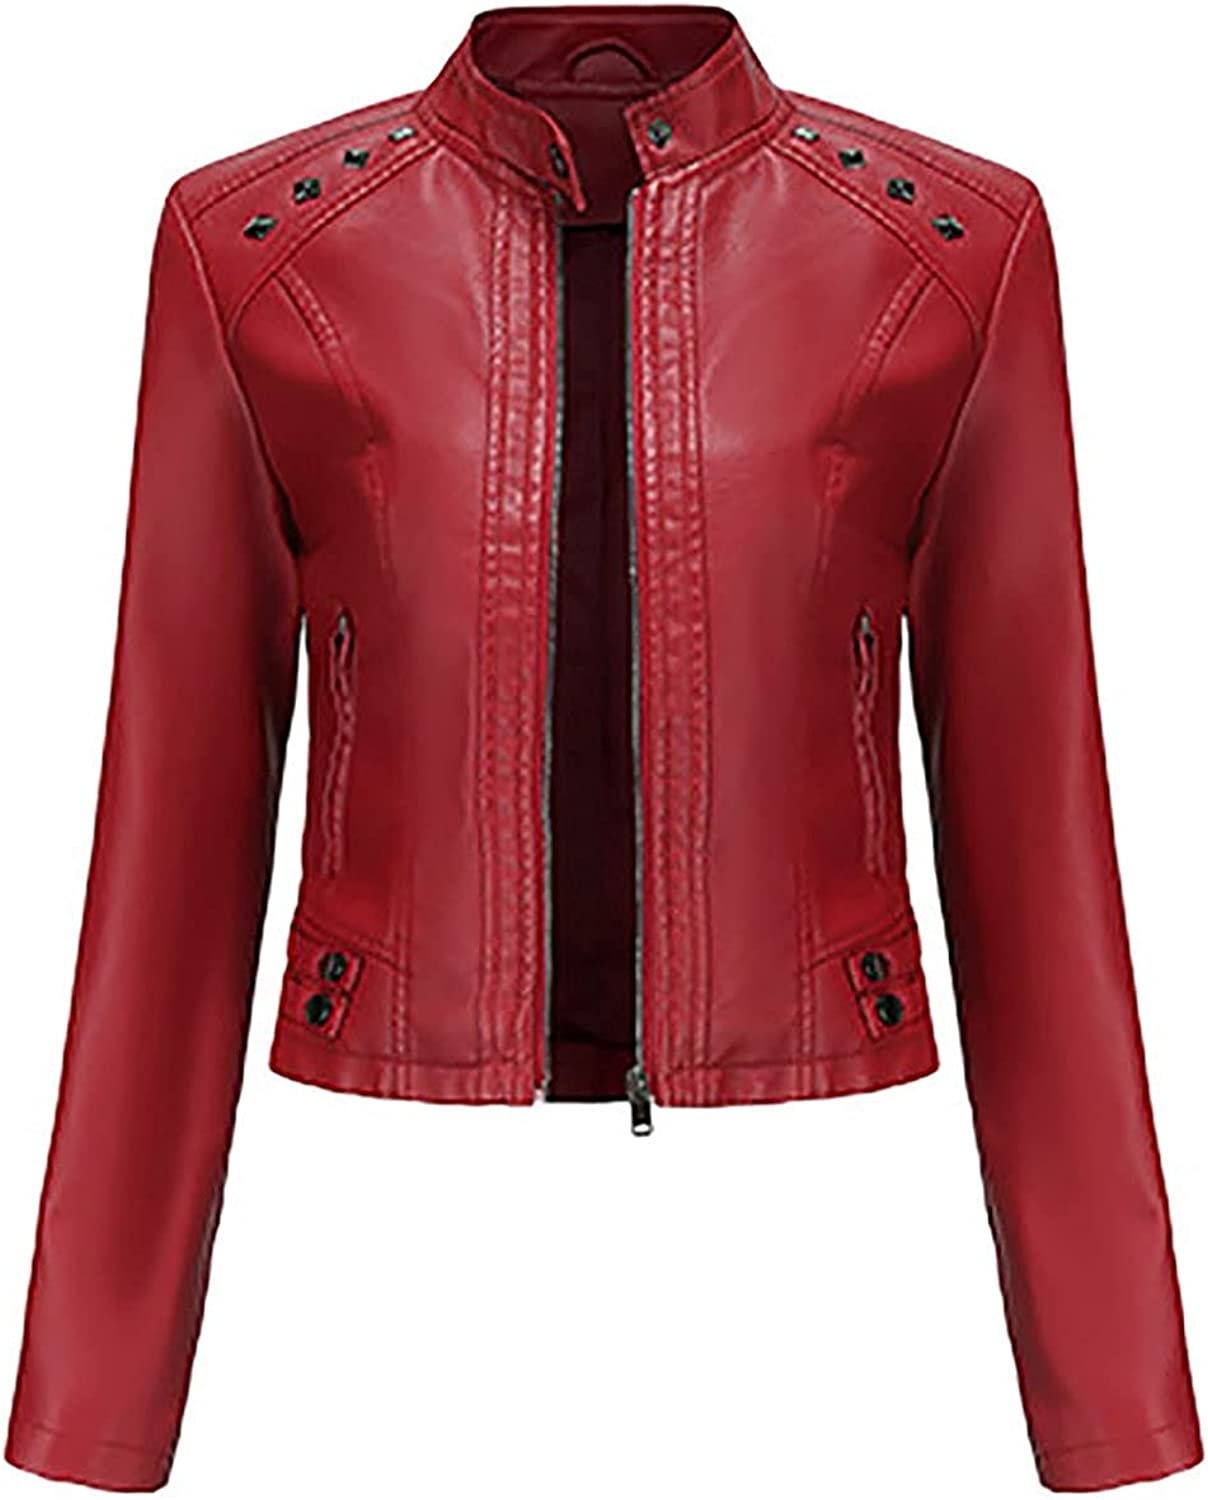 Women's Zip Up Stand Collar Solid Faux Leather Jacket,Fashion Fall Winter Slim Short Lightweight Motorcycle Coat Tops